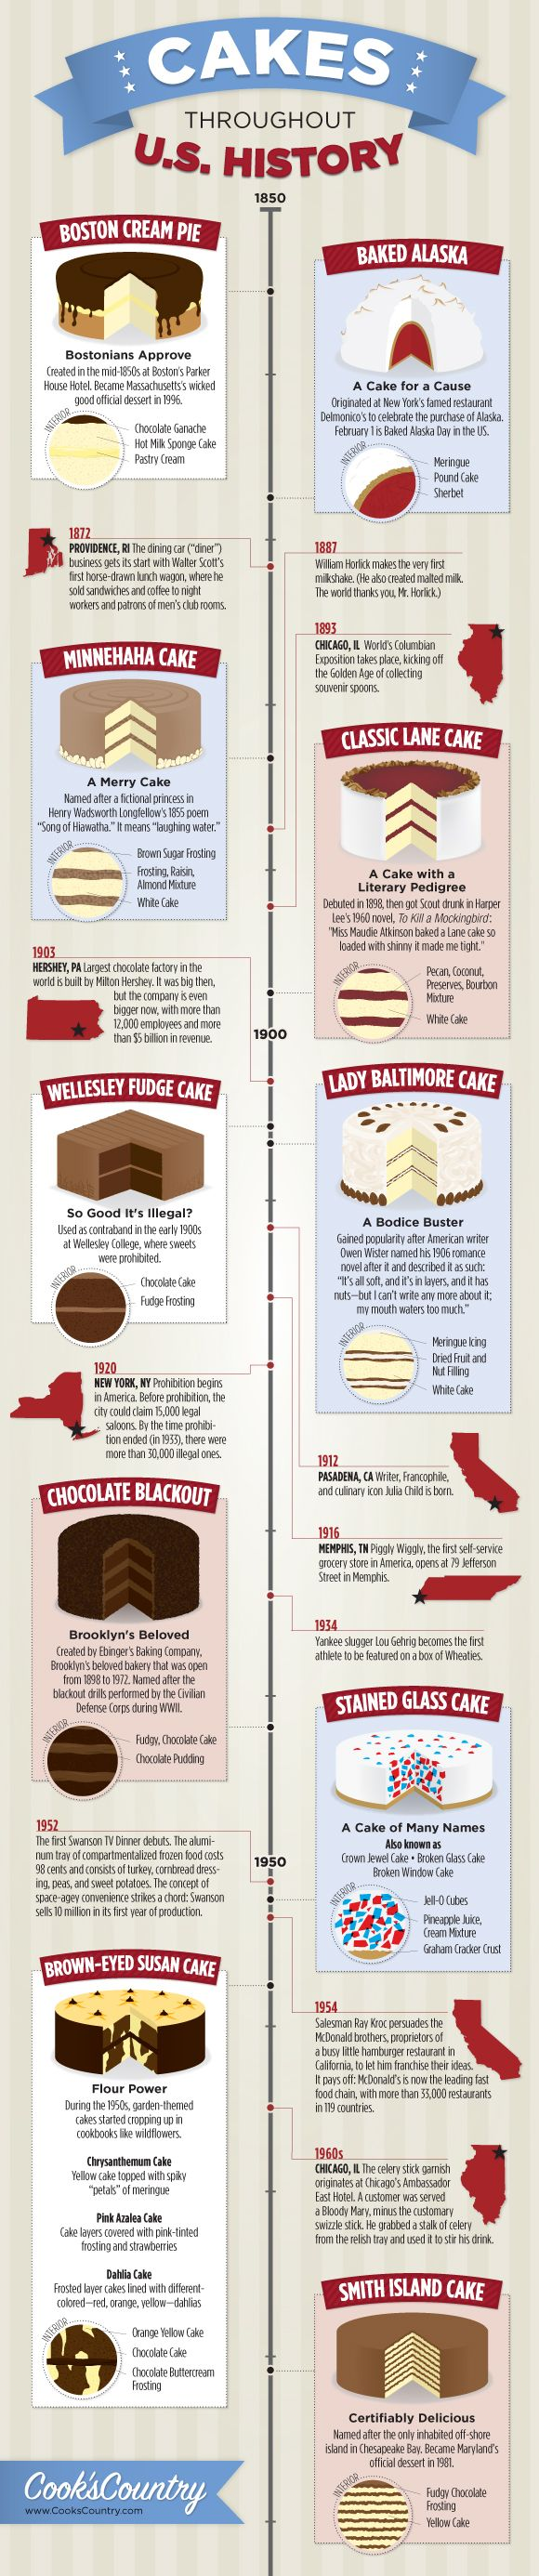 Cakes Throughout U.S. History - infographic designed by Jay Layman for Cook's Country http://www.cookscountry.com/ #history #cakes #food